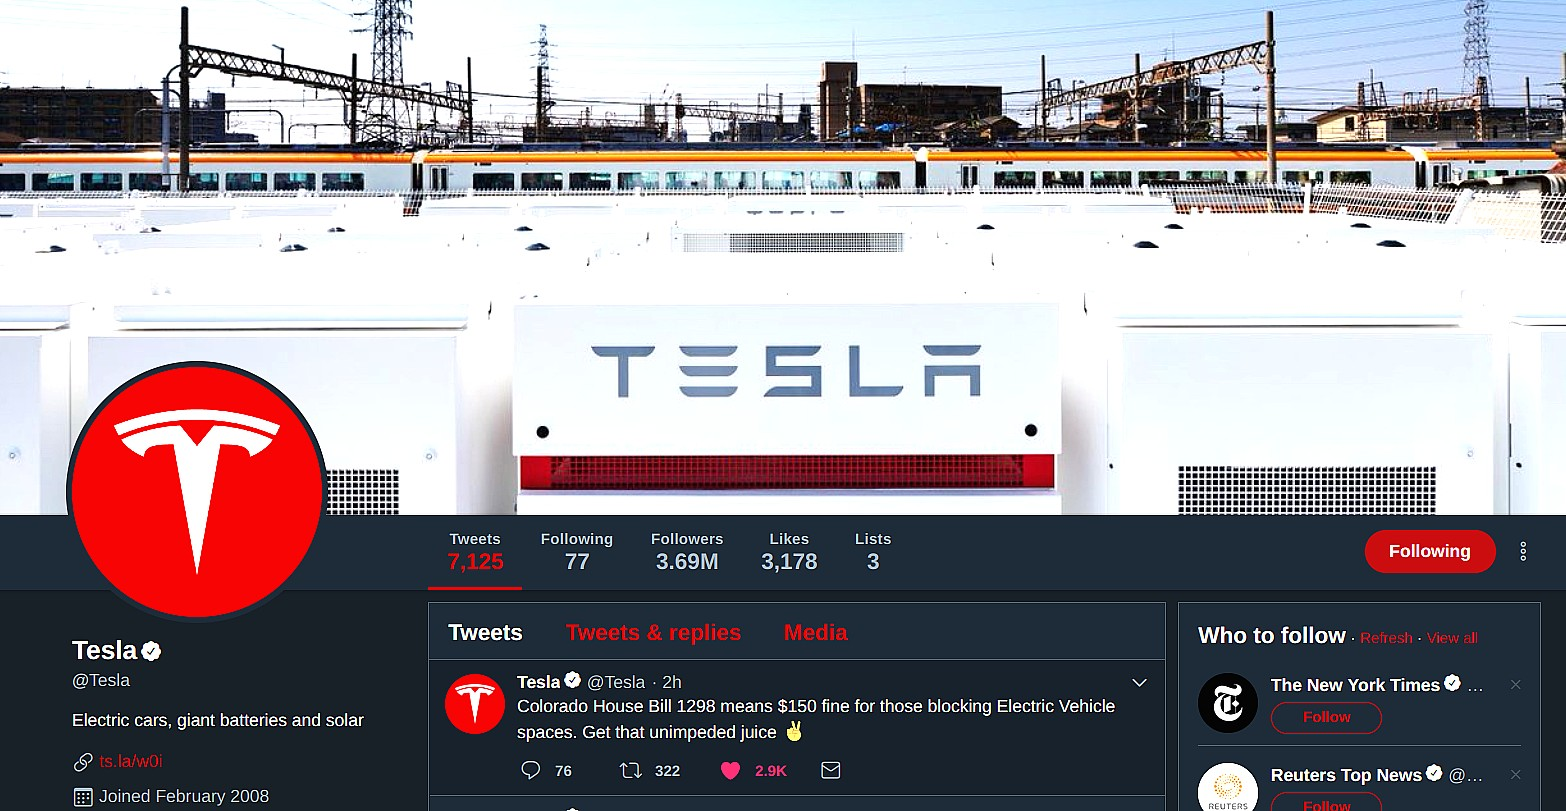 Tesla Twitter: Tesla's Twitter Account Gets Reborn With Wendy's-style Wit